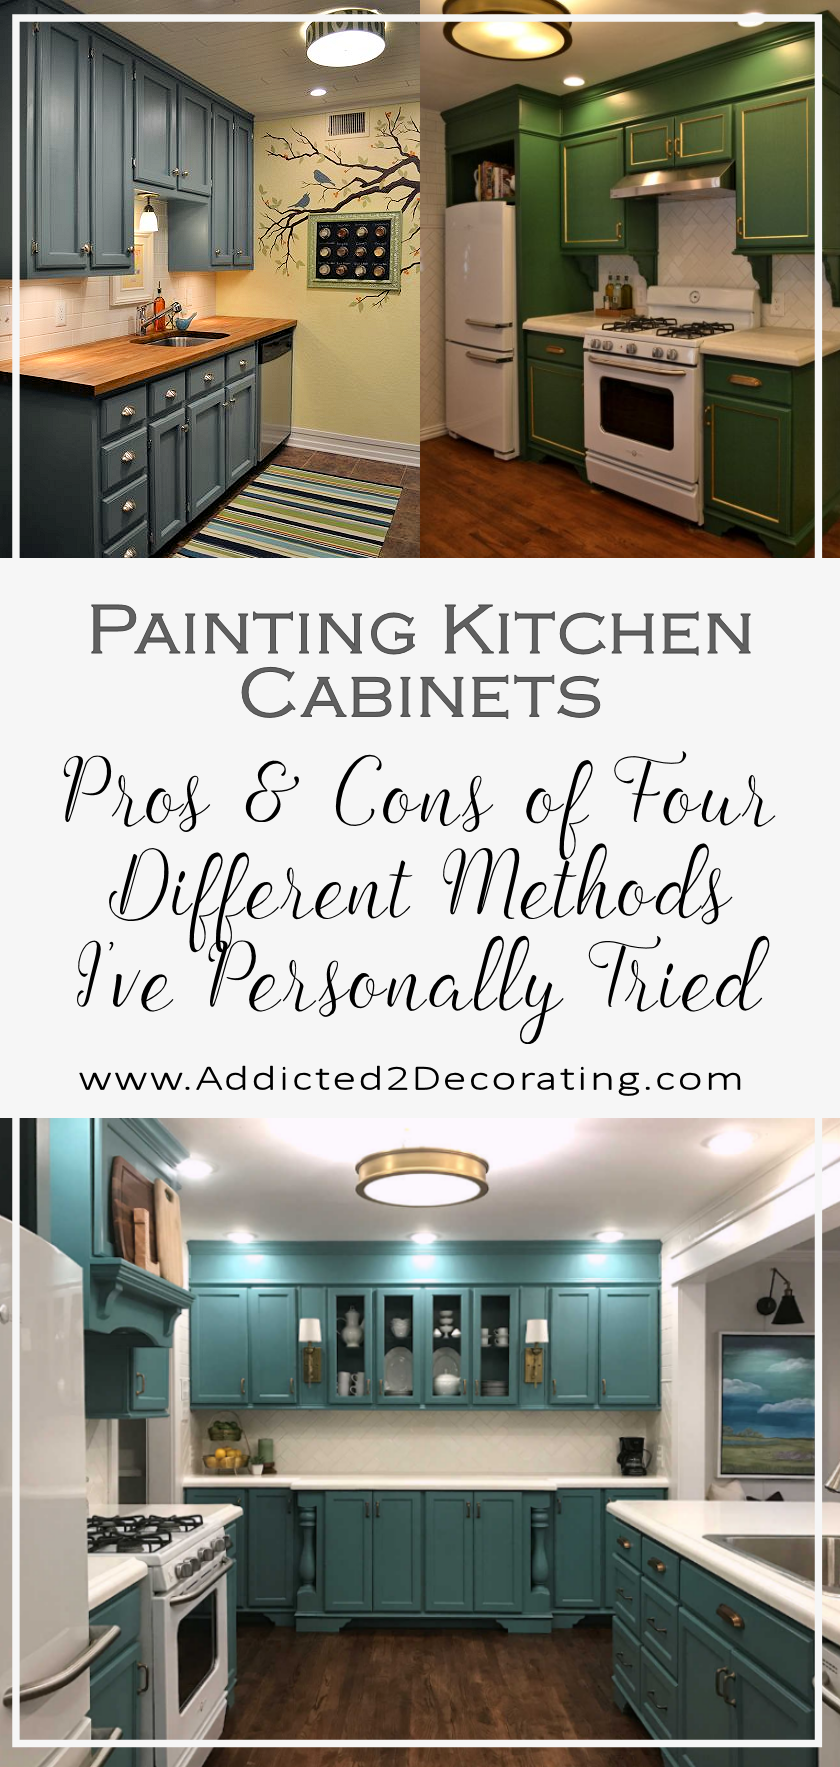 Painting Kitchen And Bathroom Cabinets Pros Cons Of Four